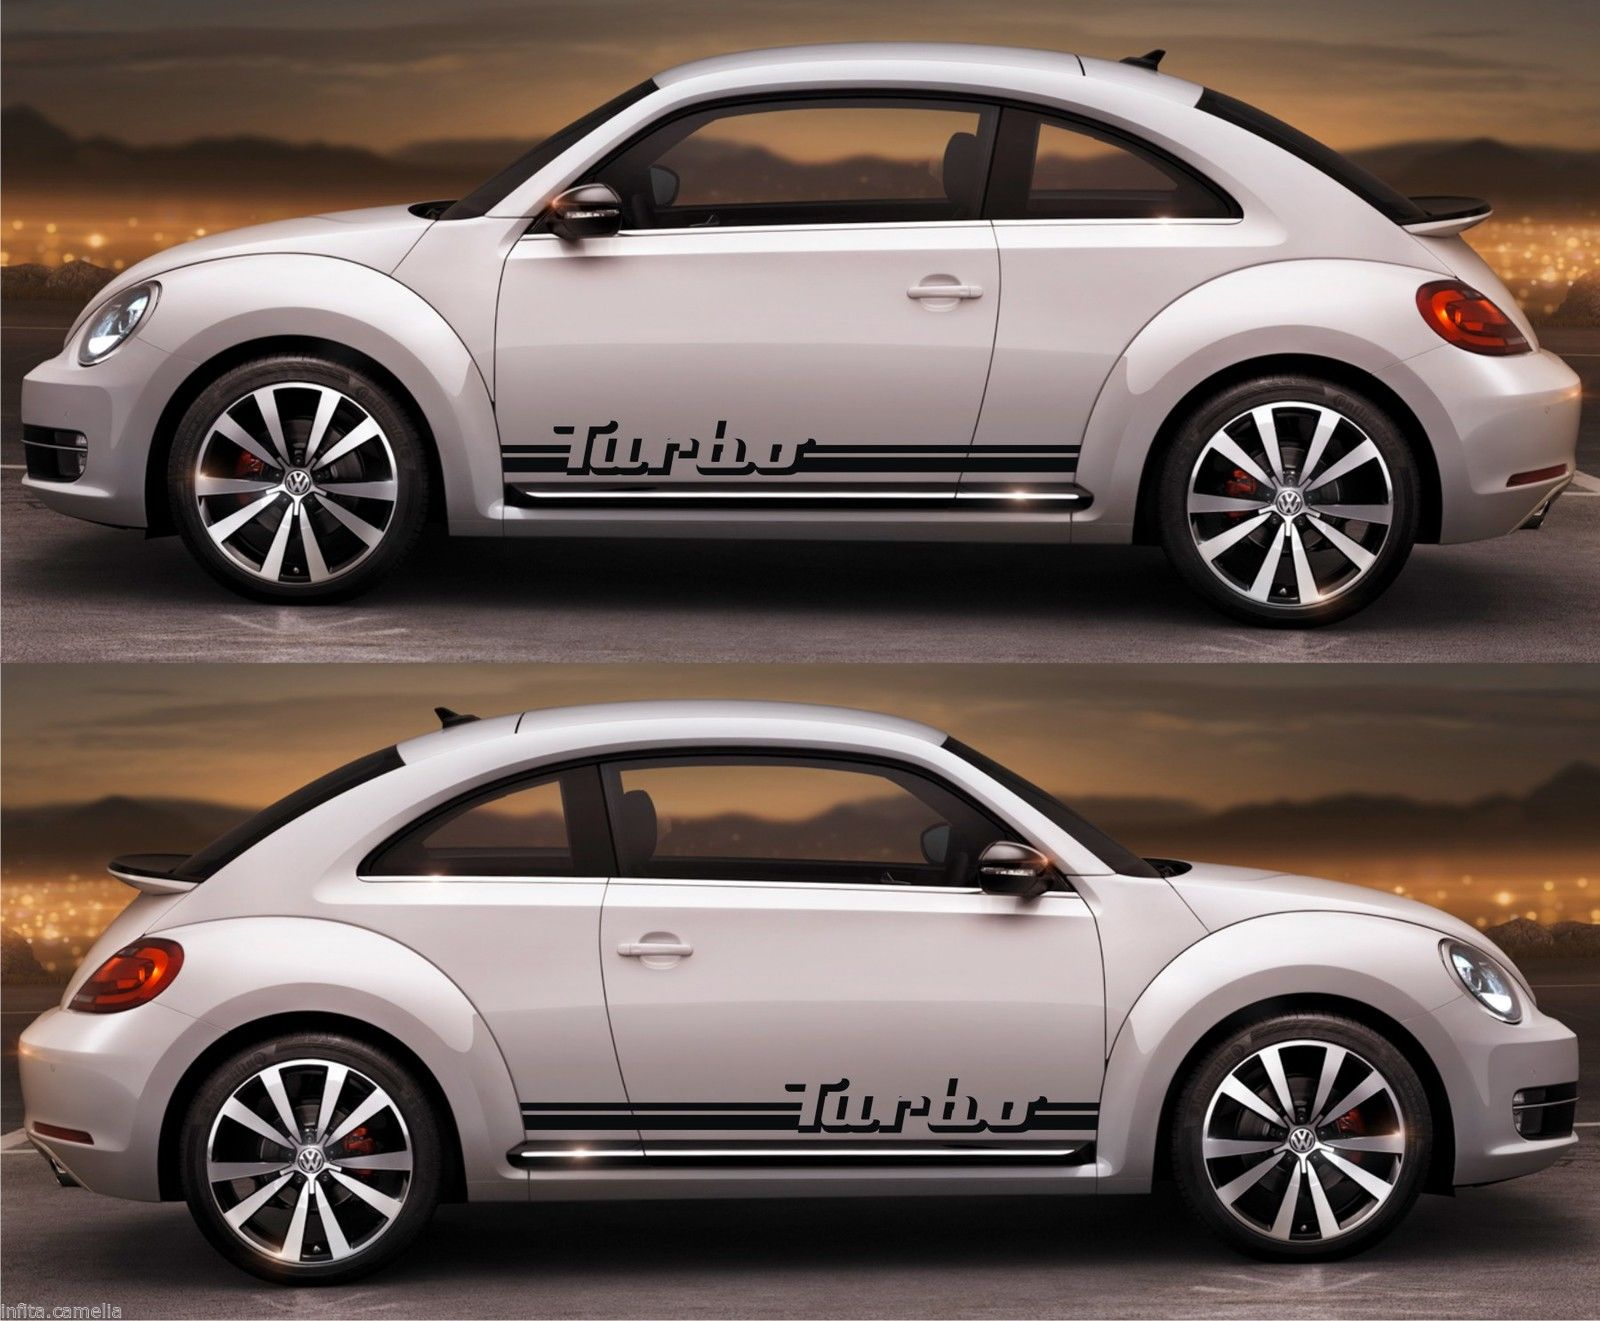 Ssk074 vw beetle volks volkswagen racing stripes sticker decal kit drift euro germany classy stance dc